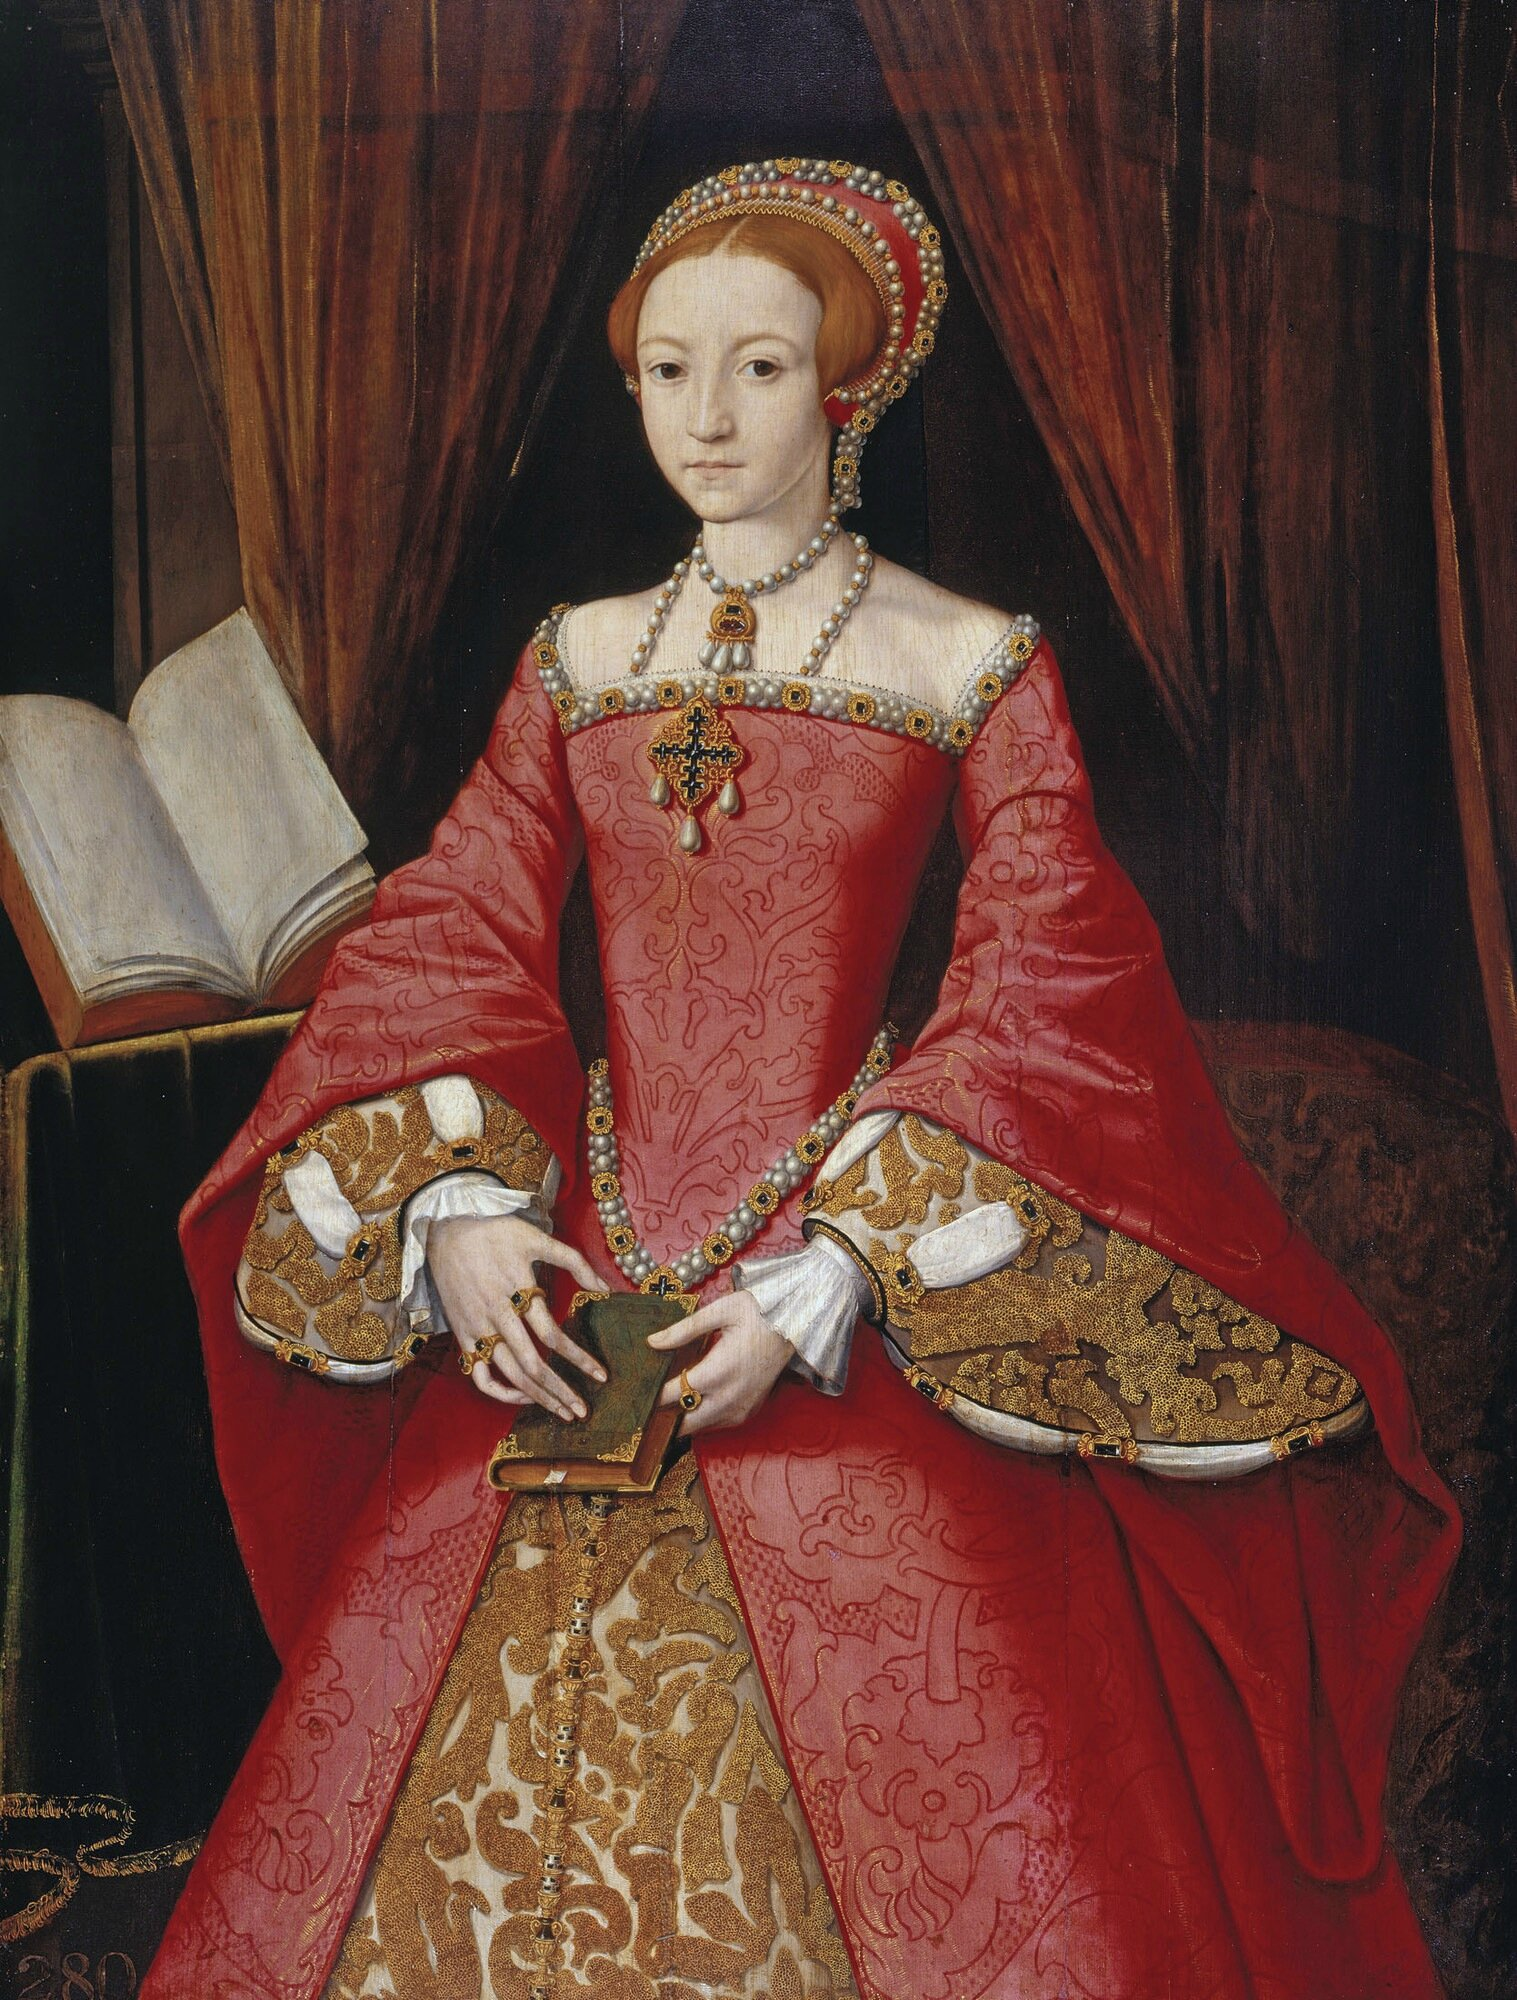 1546 (ca) Elizabeth Ière en Princesse - Windsor collection